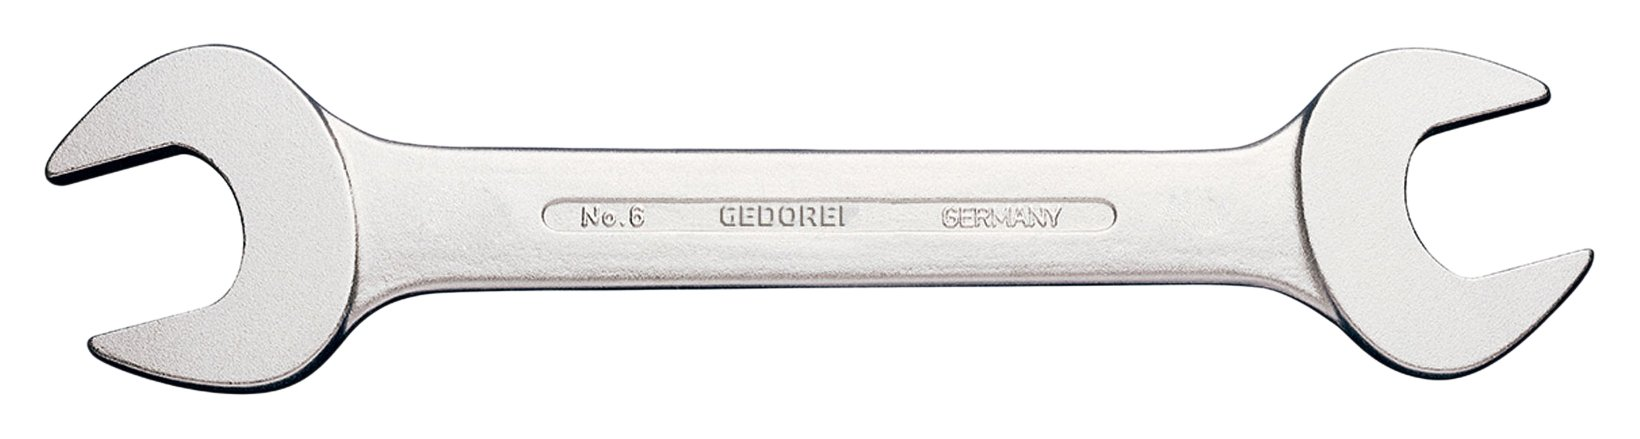 GEDORE 6 36x41 Double Open Ended Spanner 36x41 mm